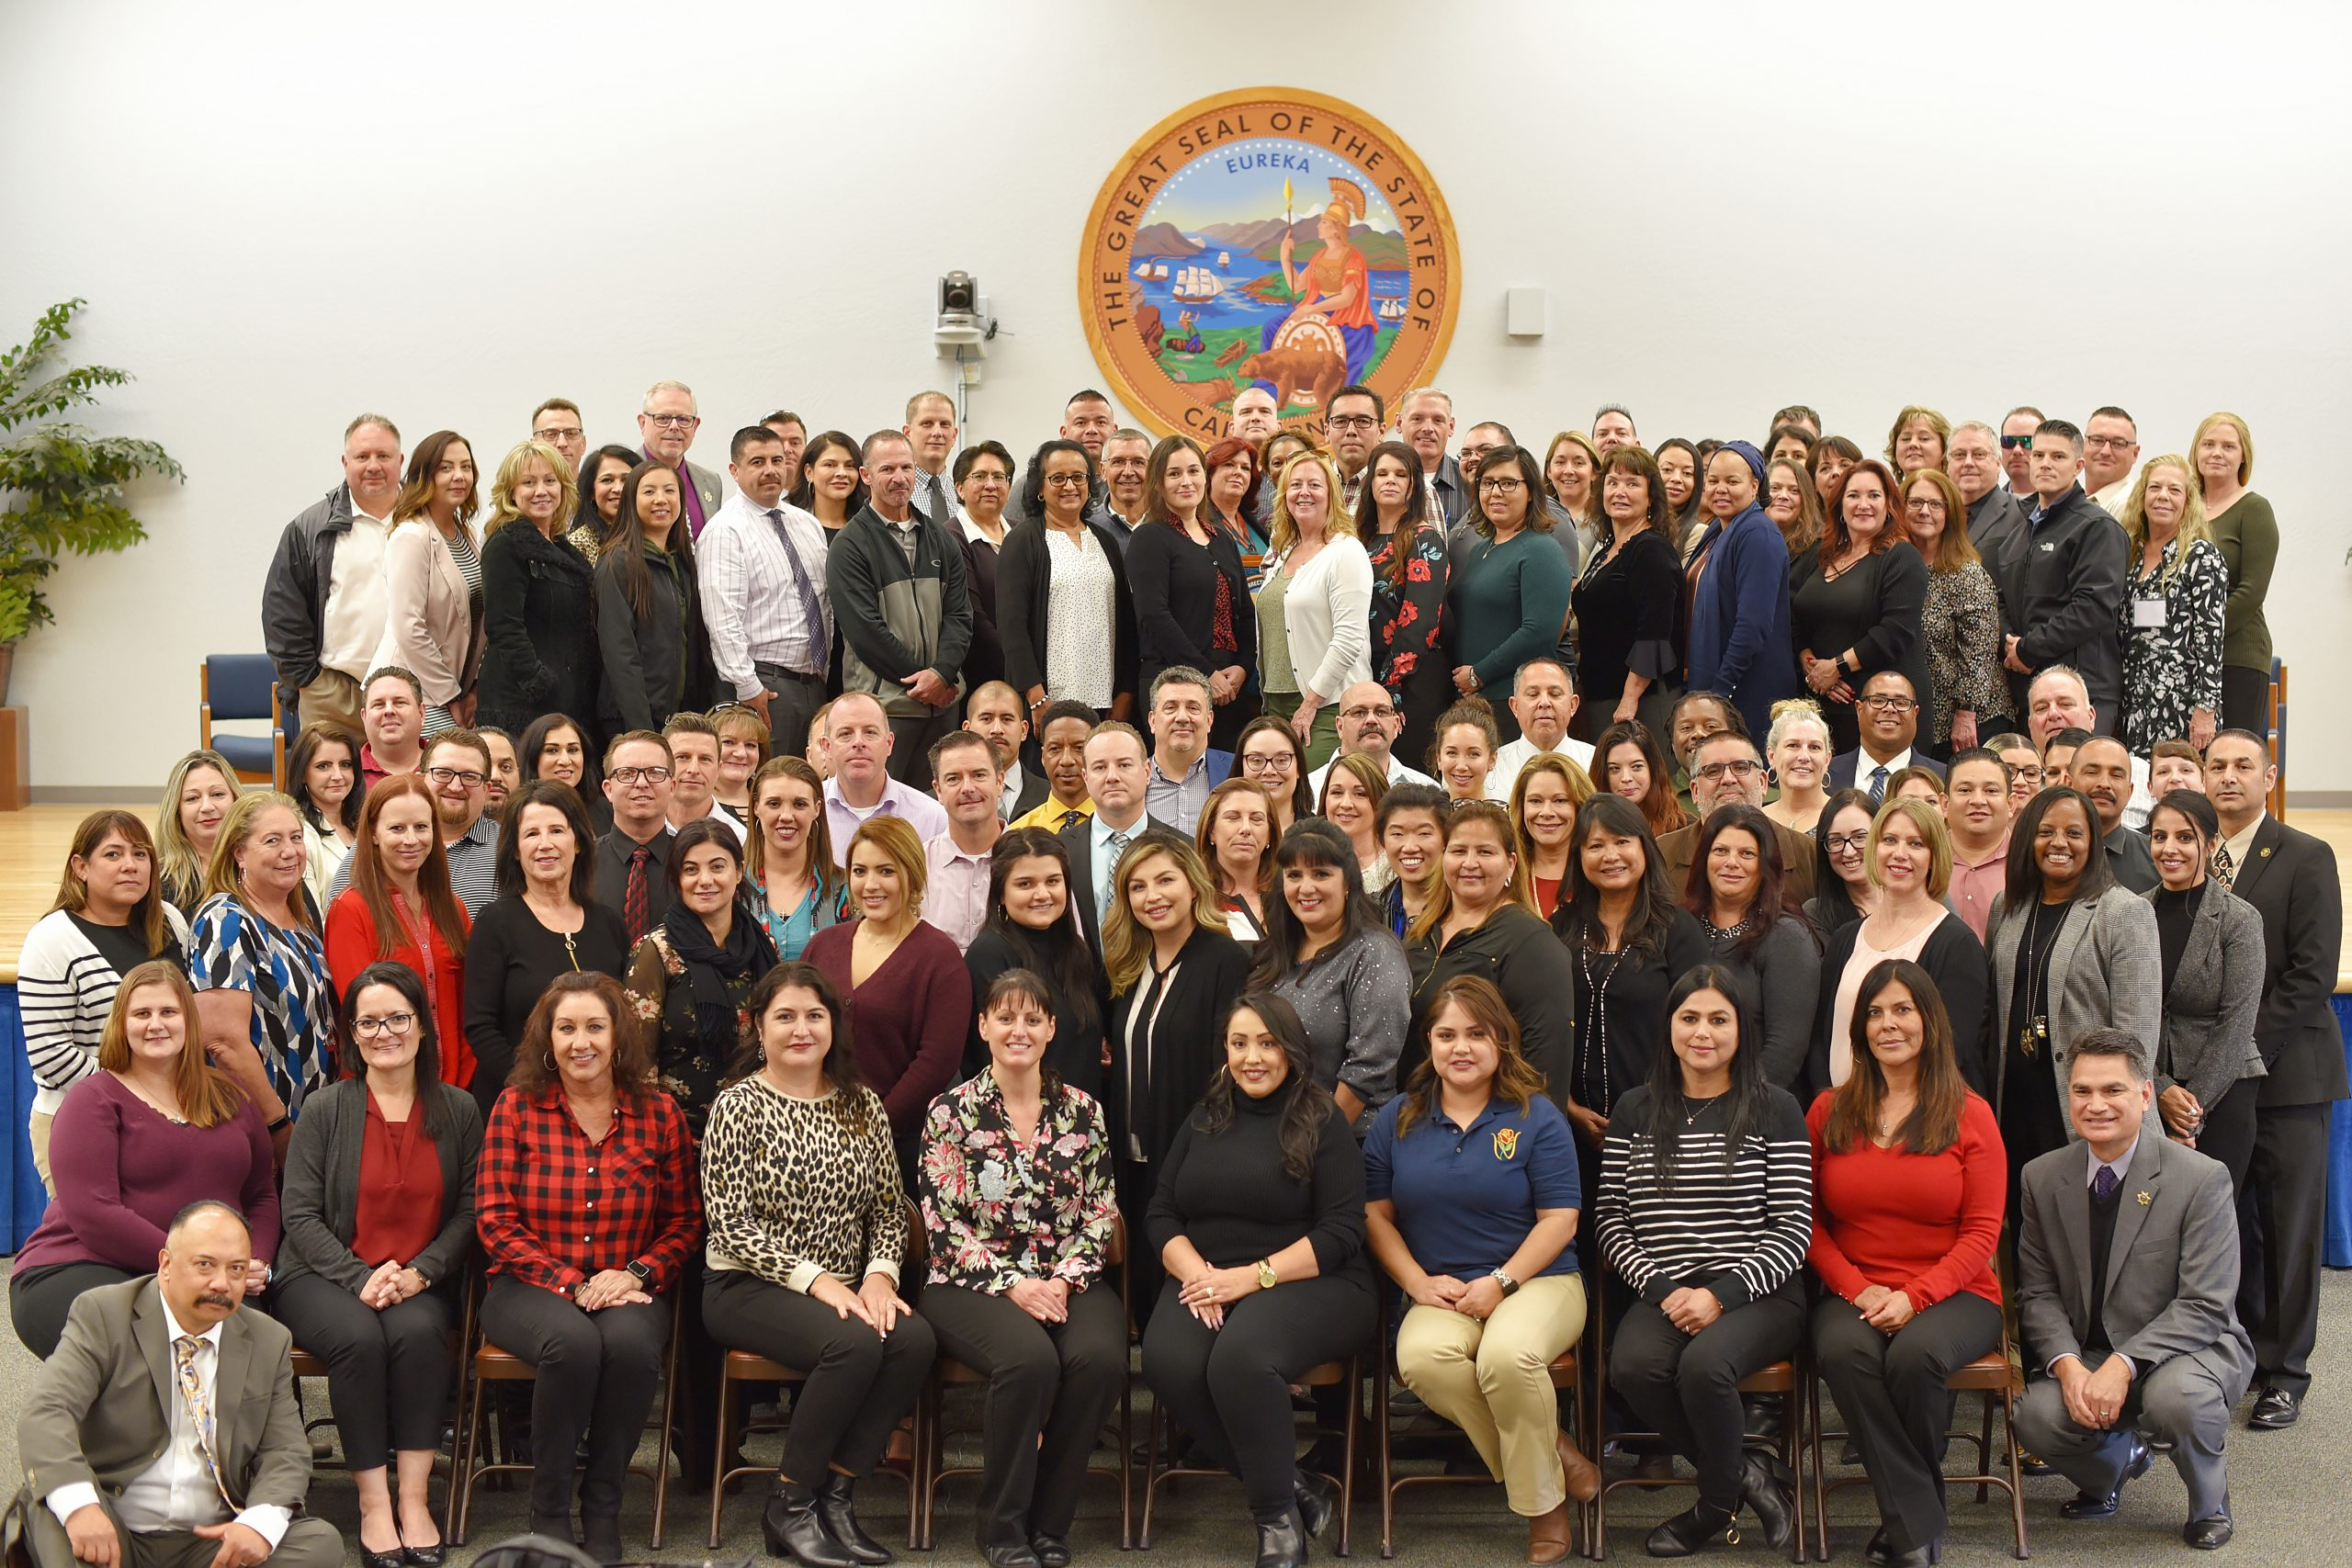 Large group of people pose in front of the California State Seal.